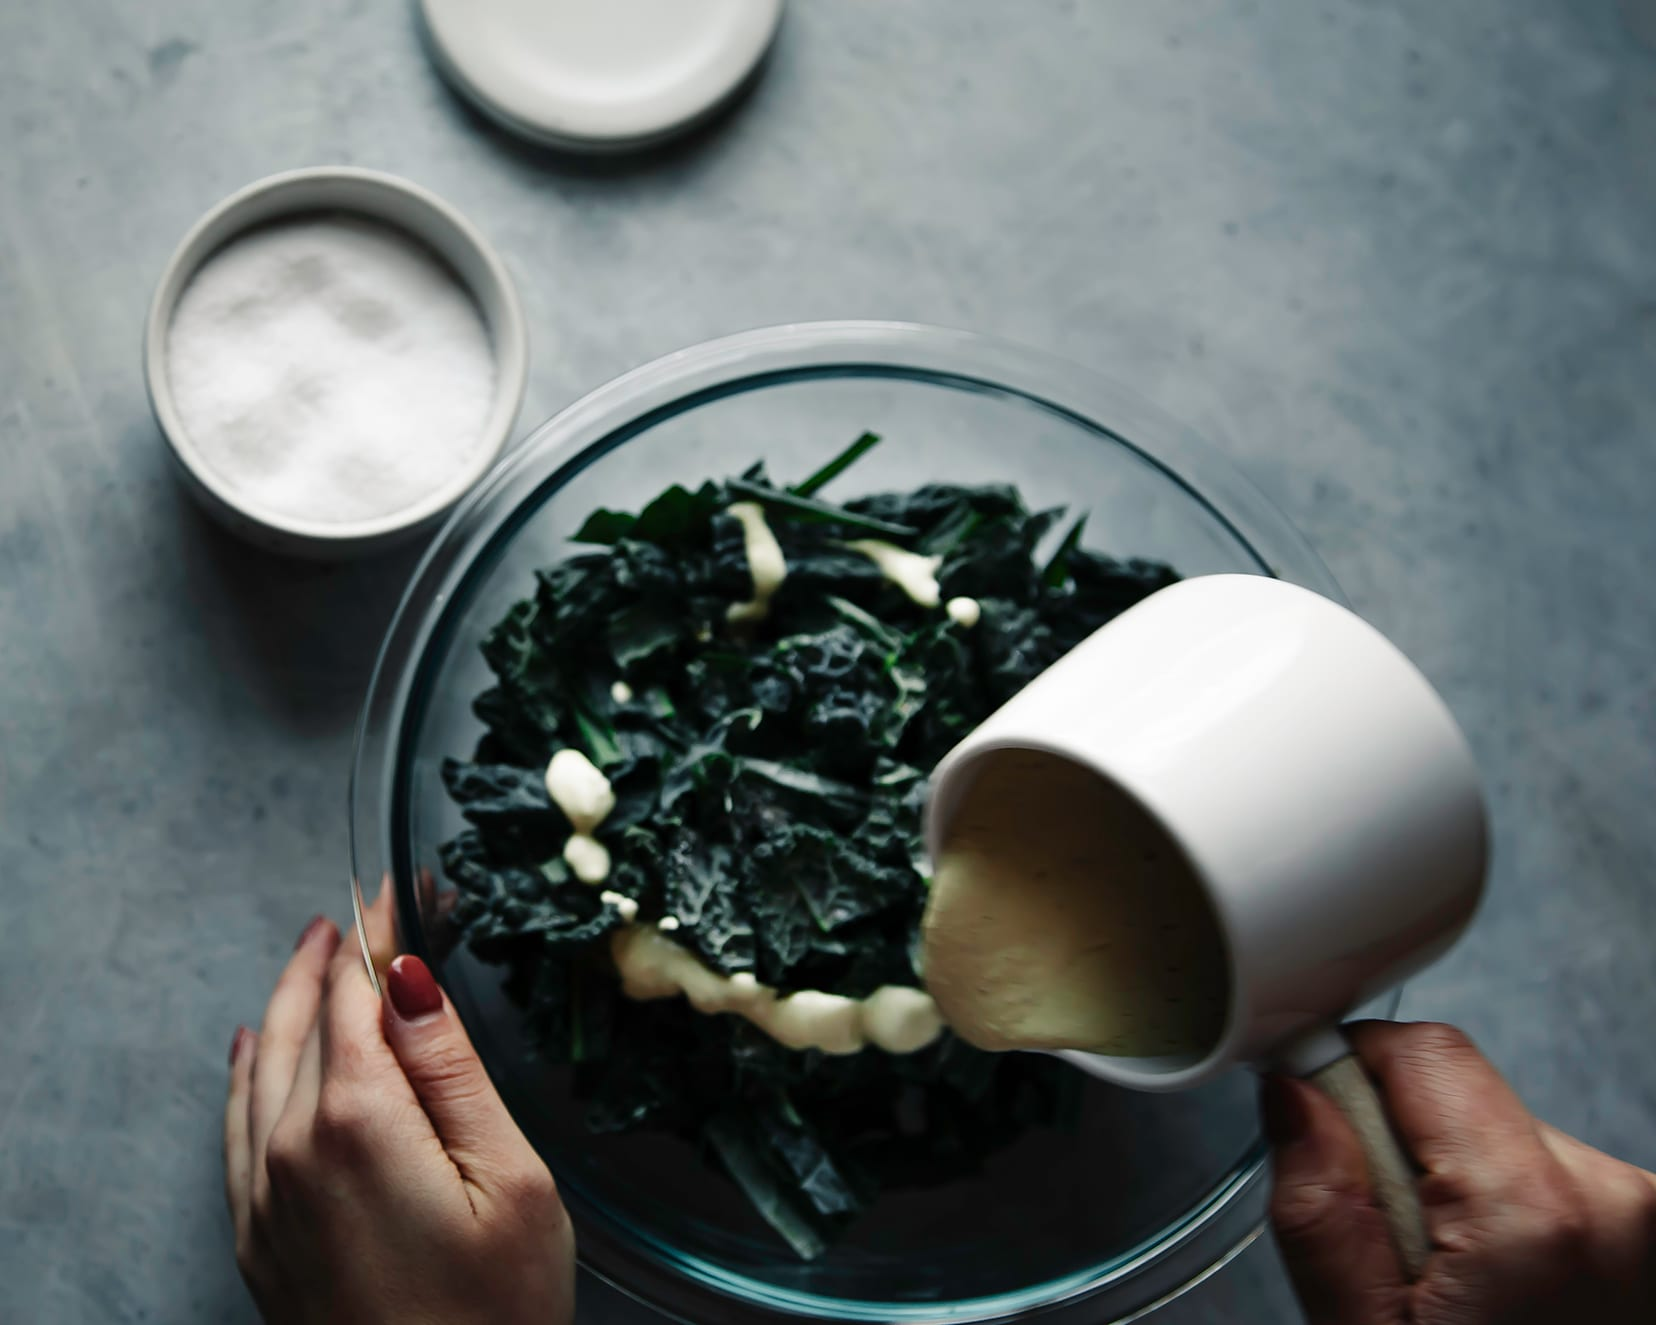 Image shows a hand pouring a creamy dressing over some chopped kale in a bowl.